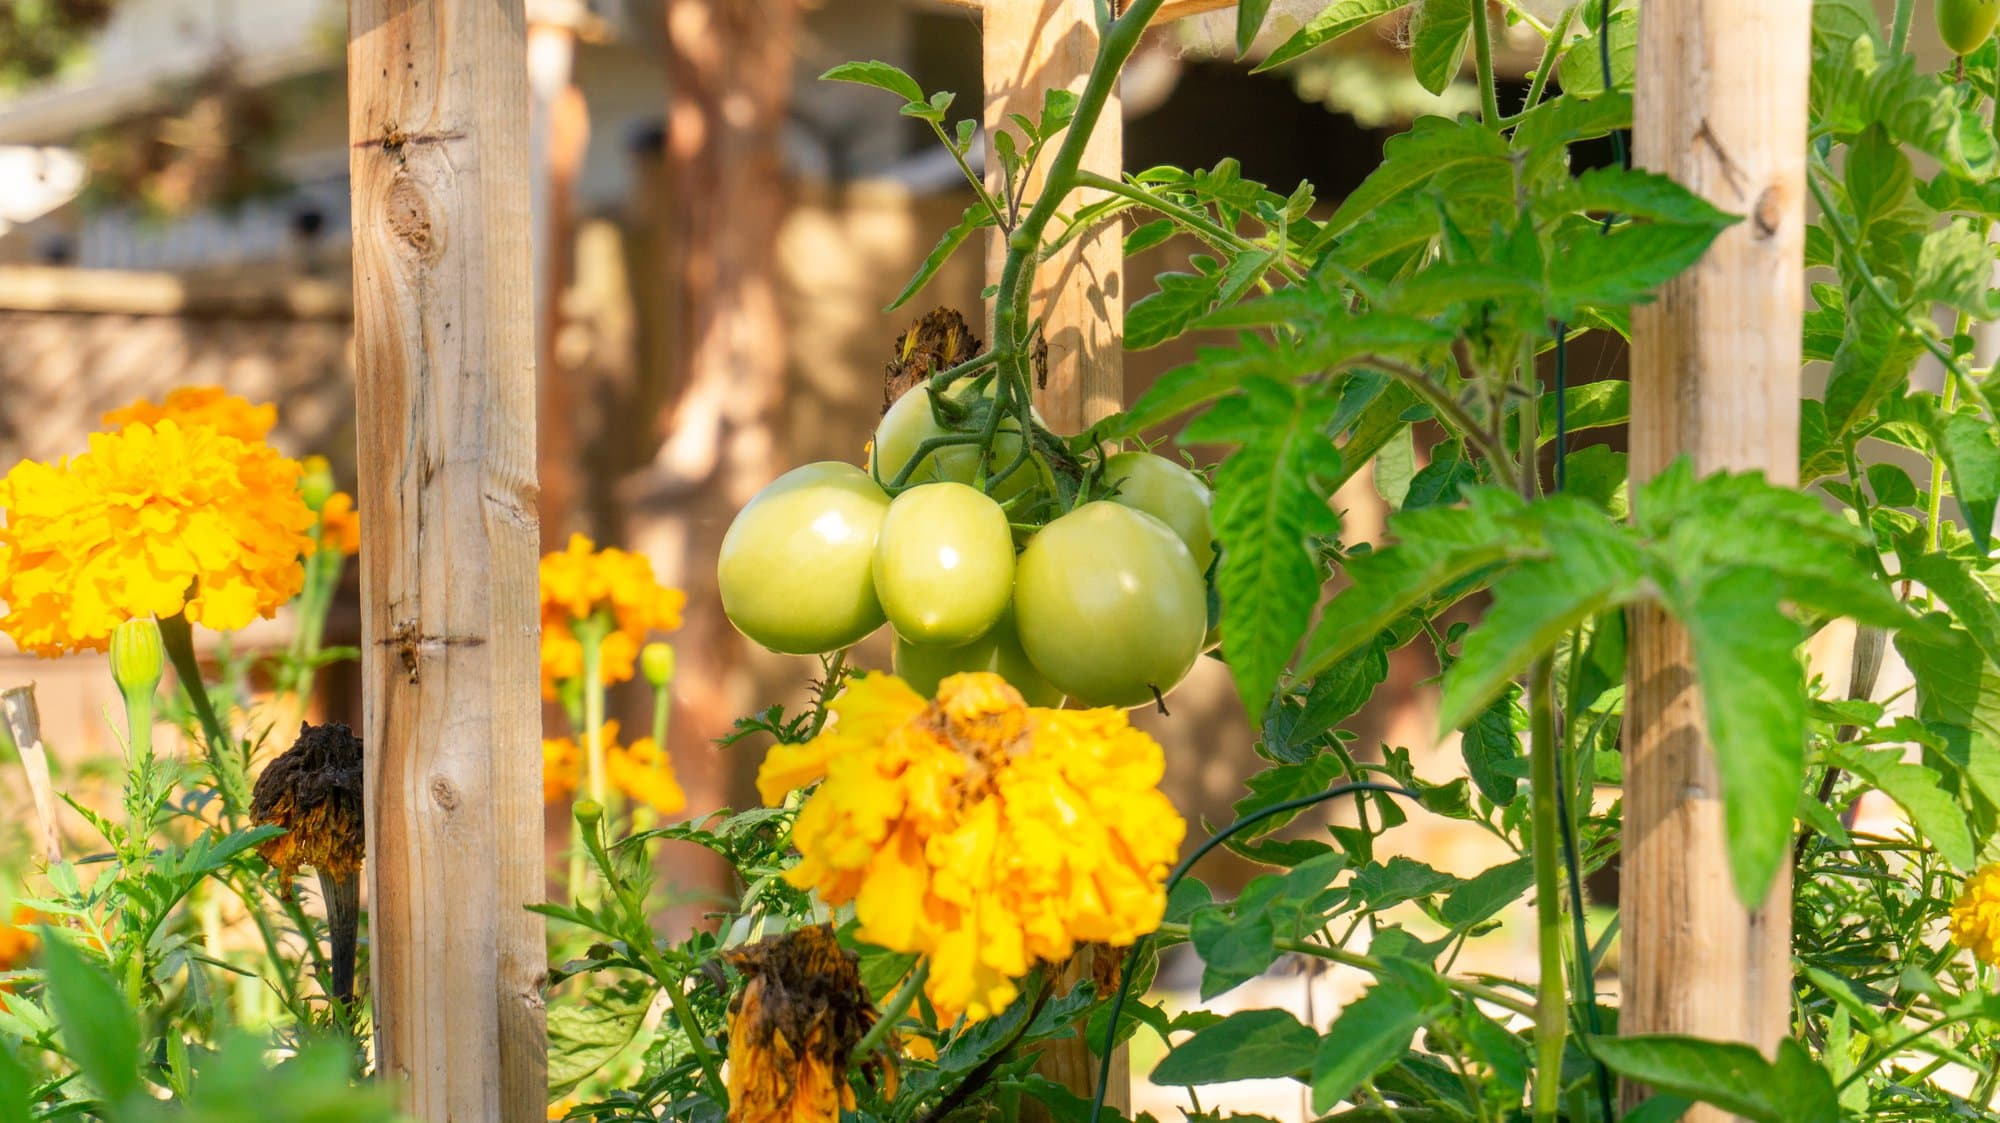 Marigolds in my Tomatoes??? A Guide to Companion Planting